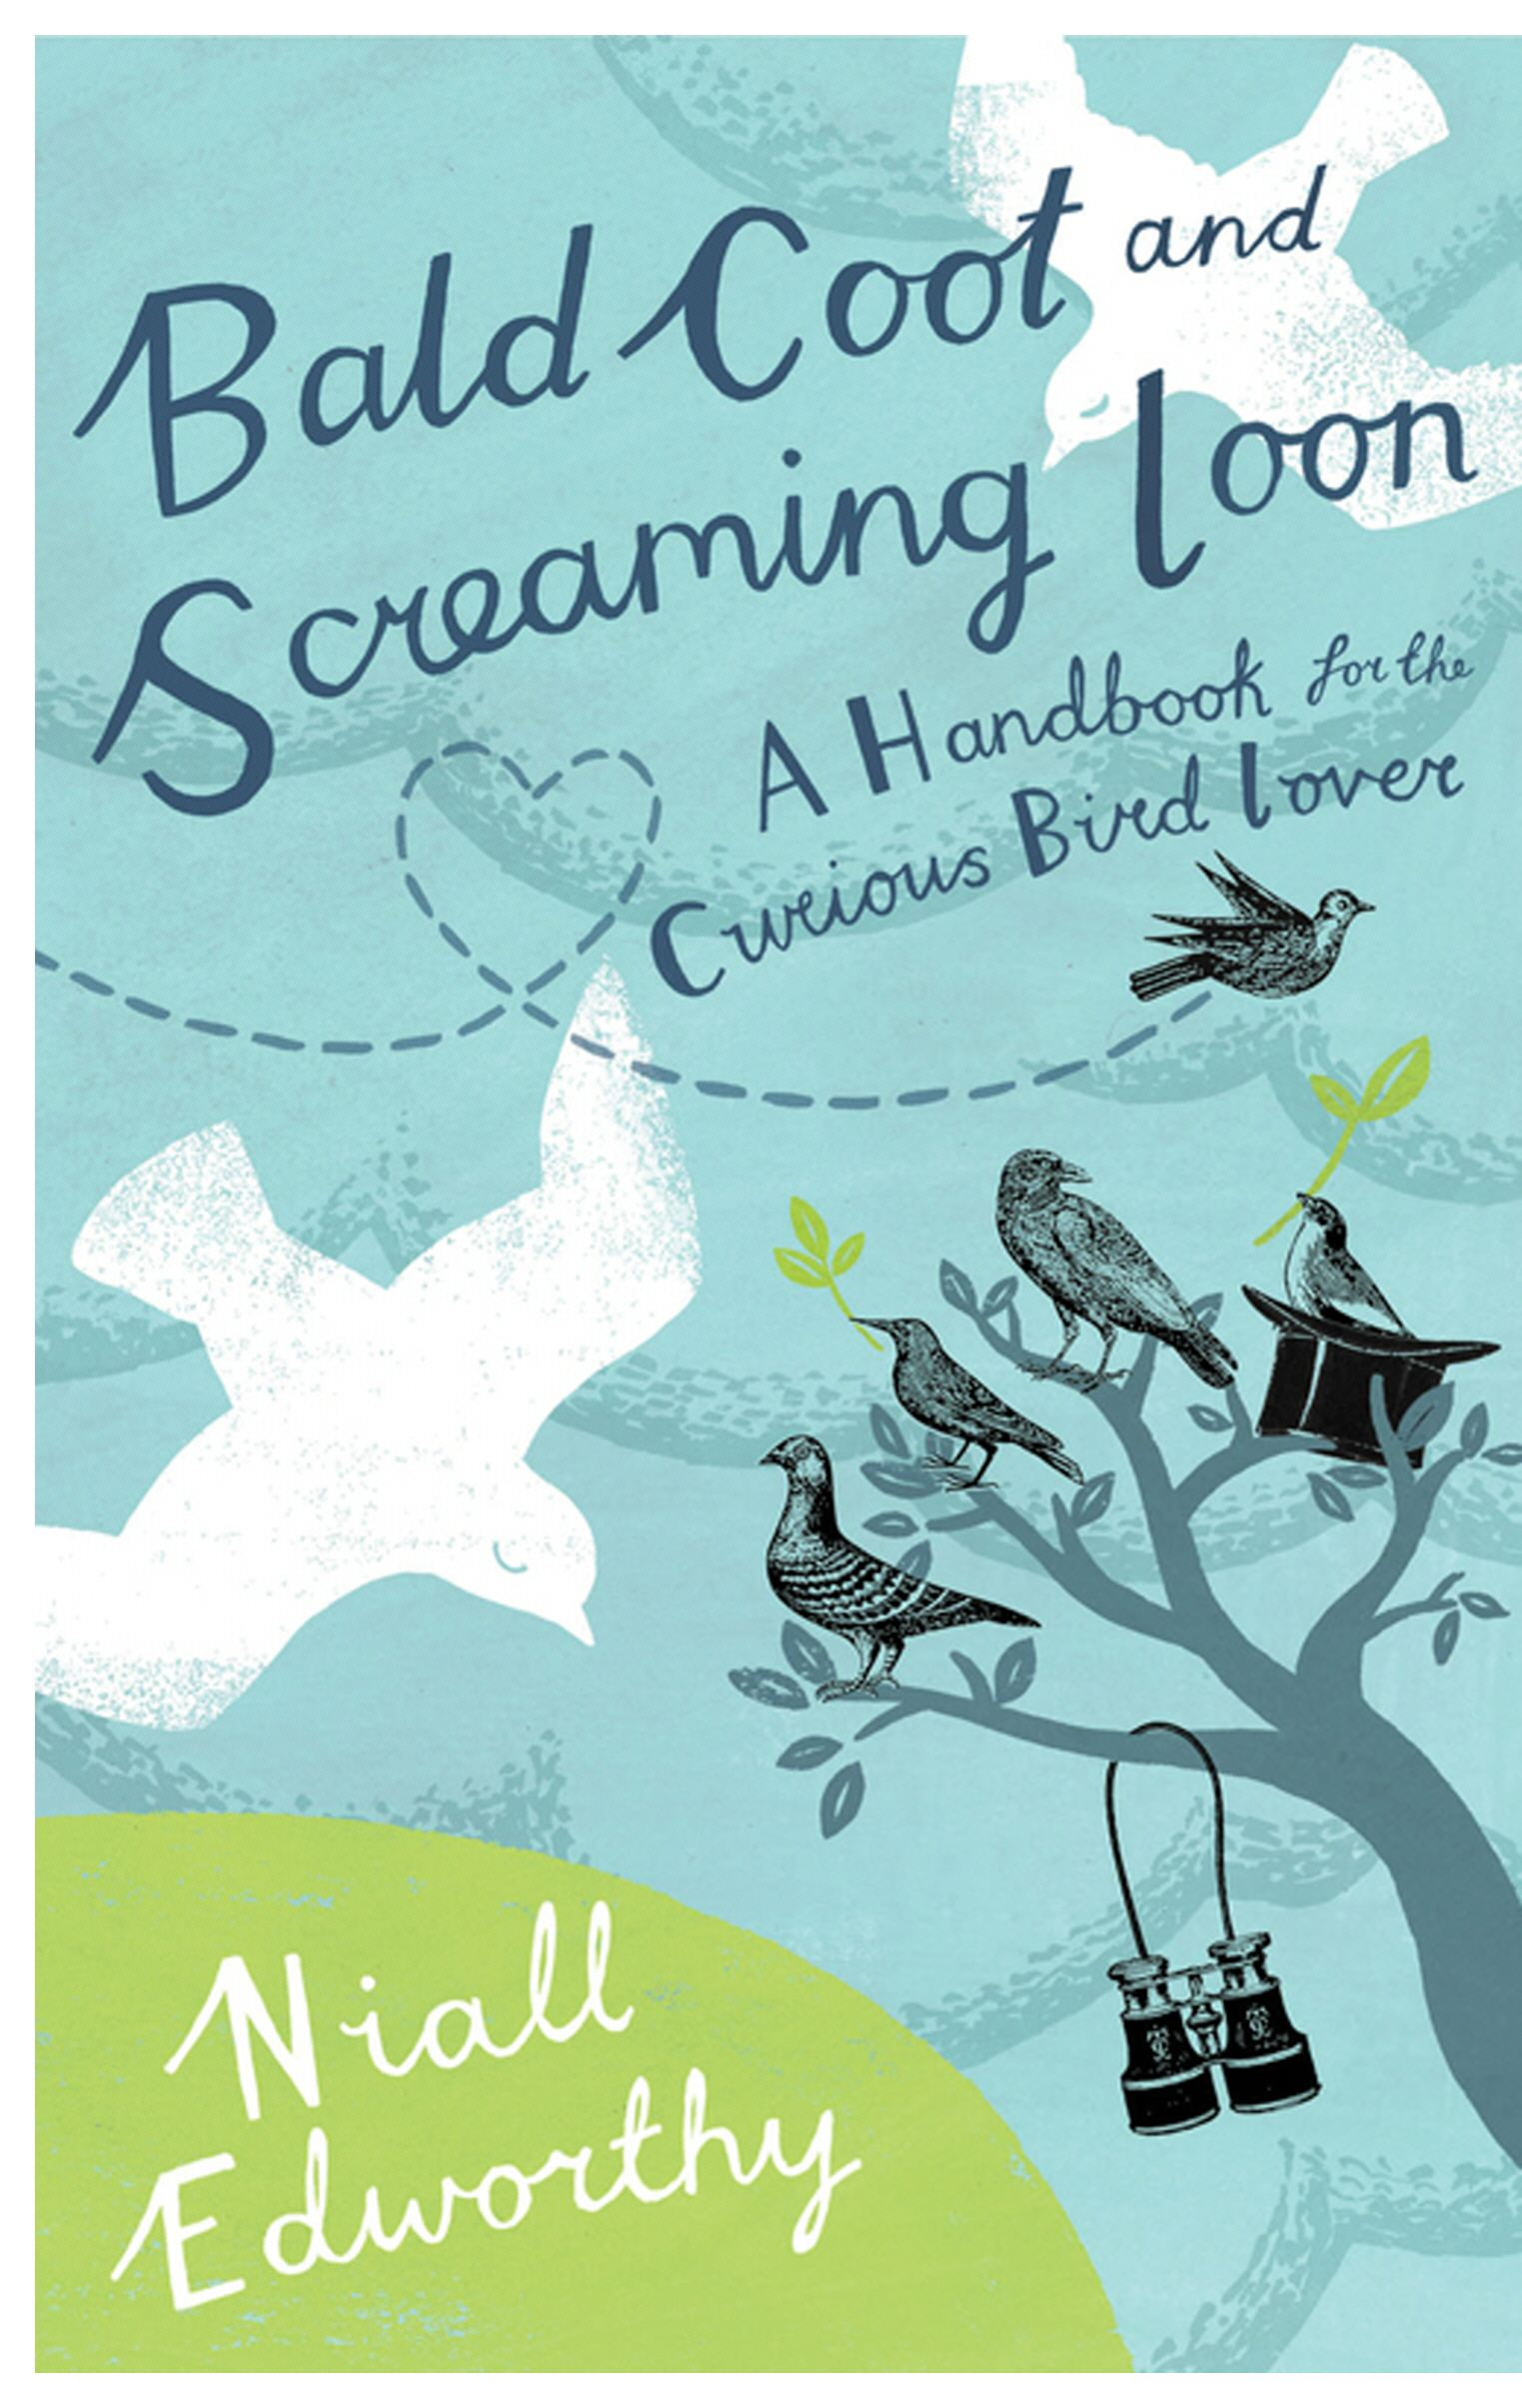 Bald Coot and Screaming Loon A handbook for the curious bird lover